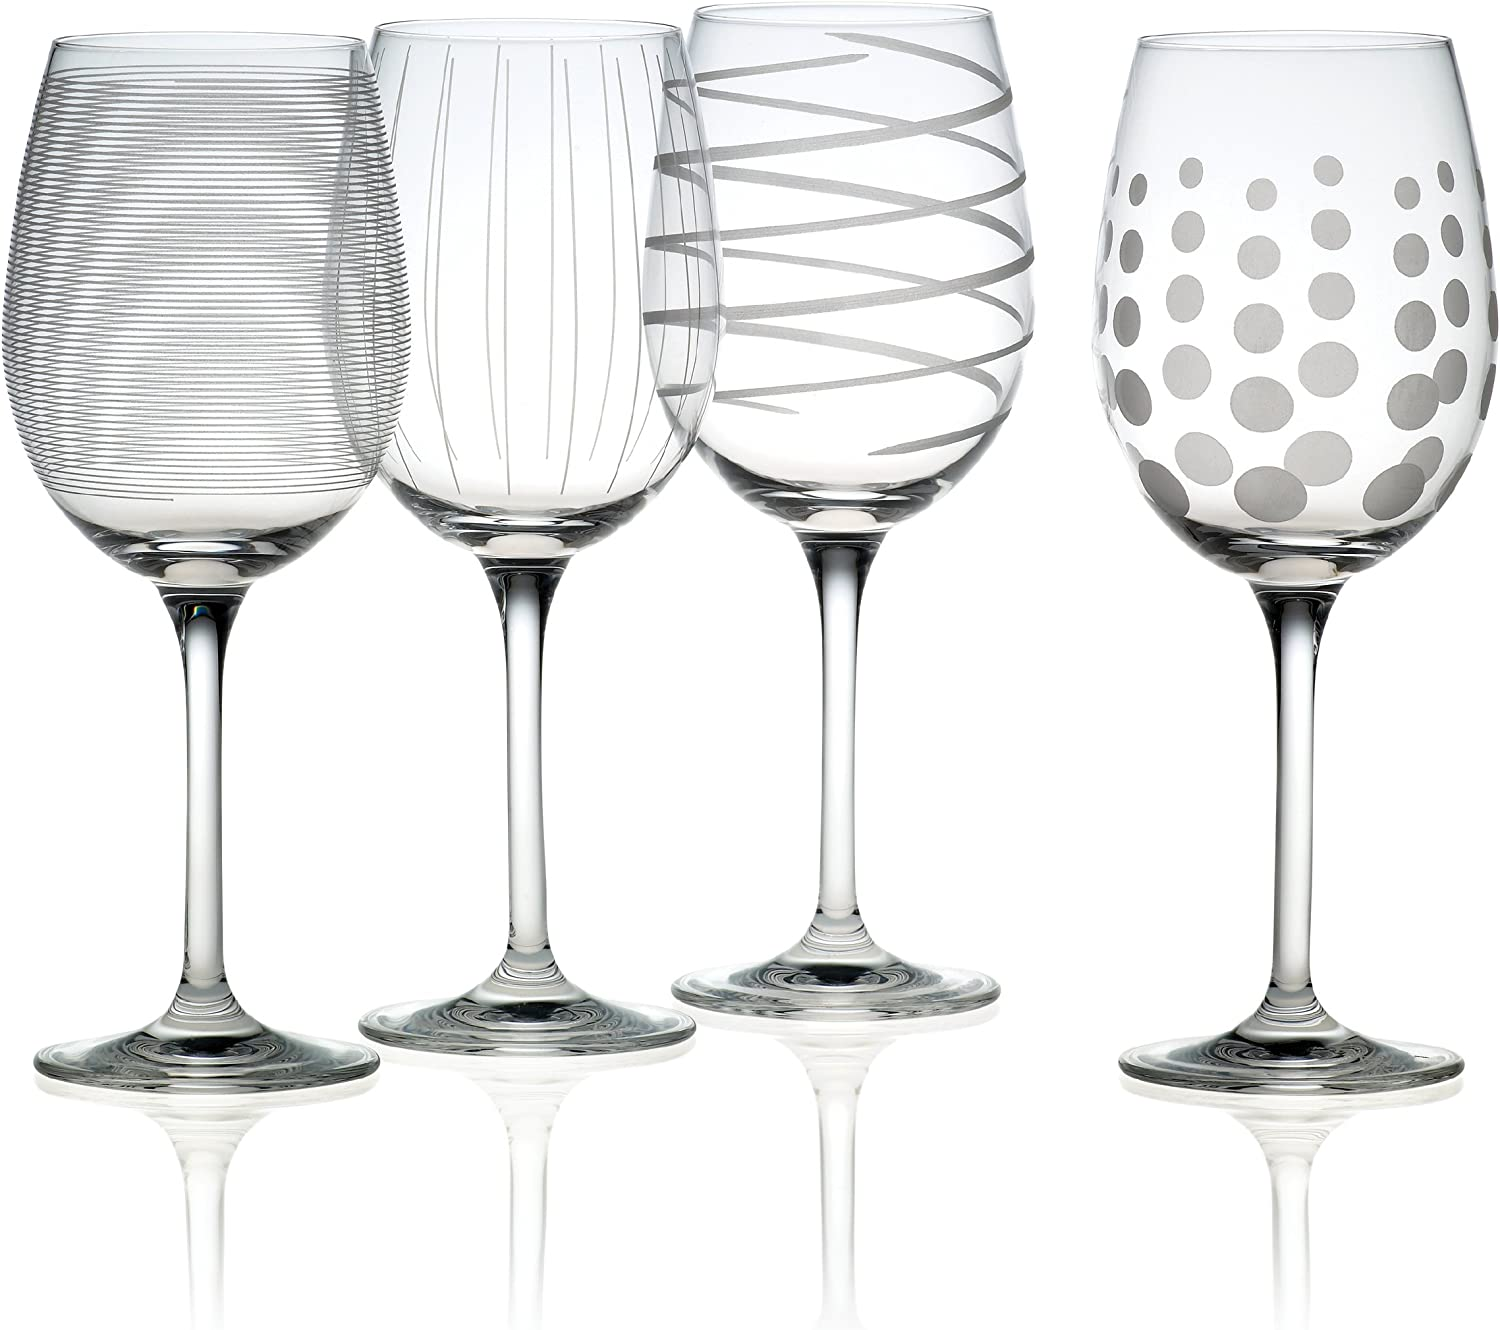 Mikasa Cheers White Wine Glasses, Clear, Set of 4